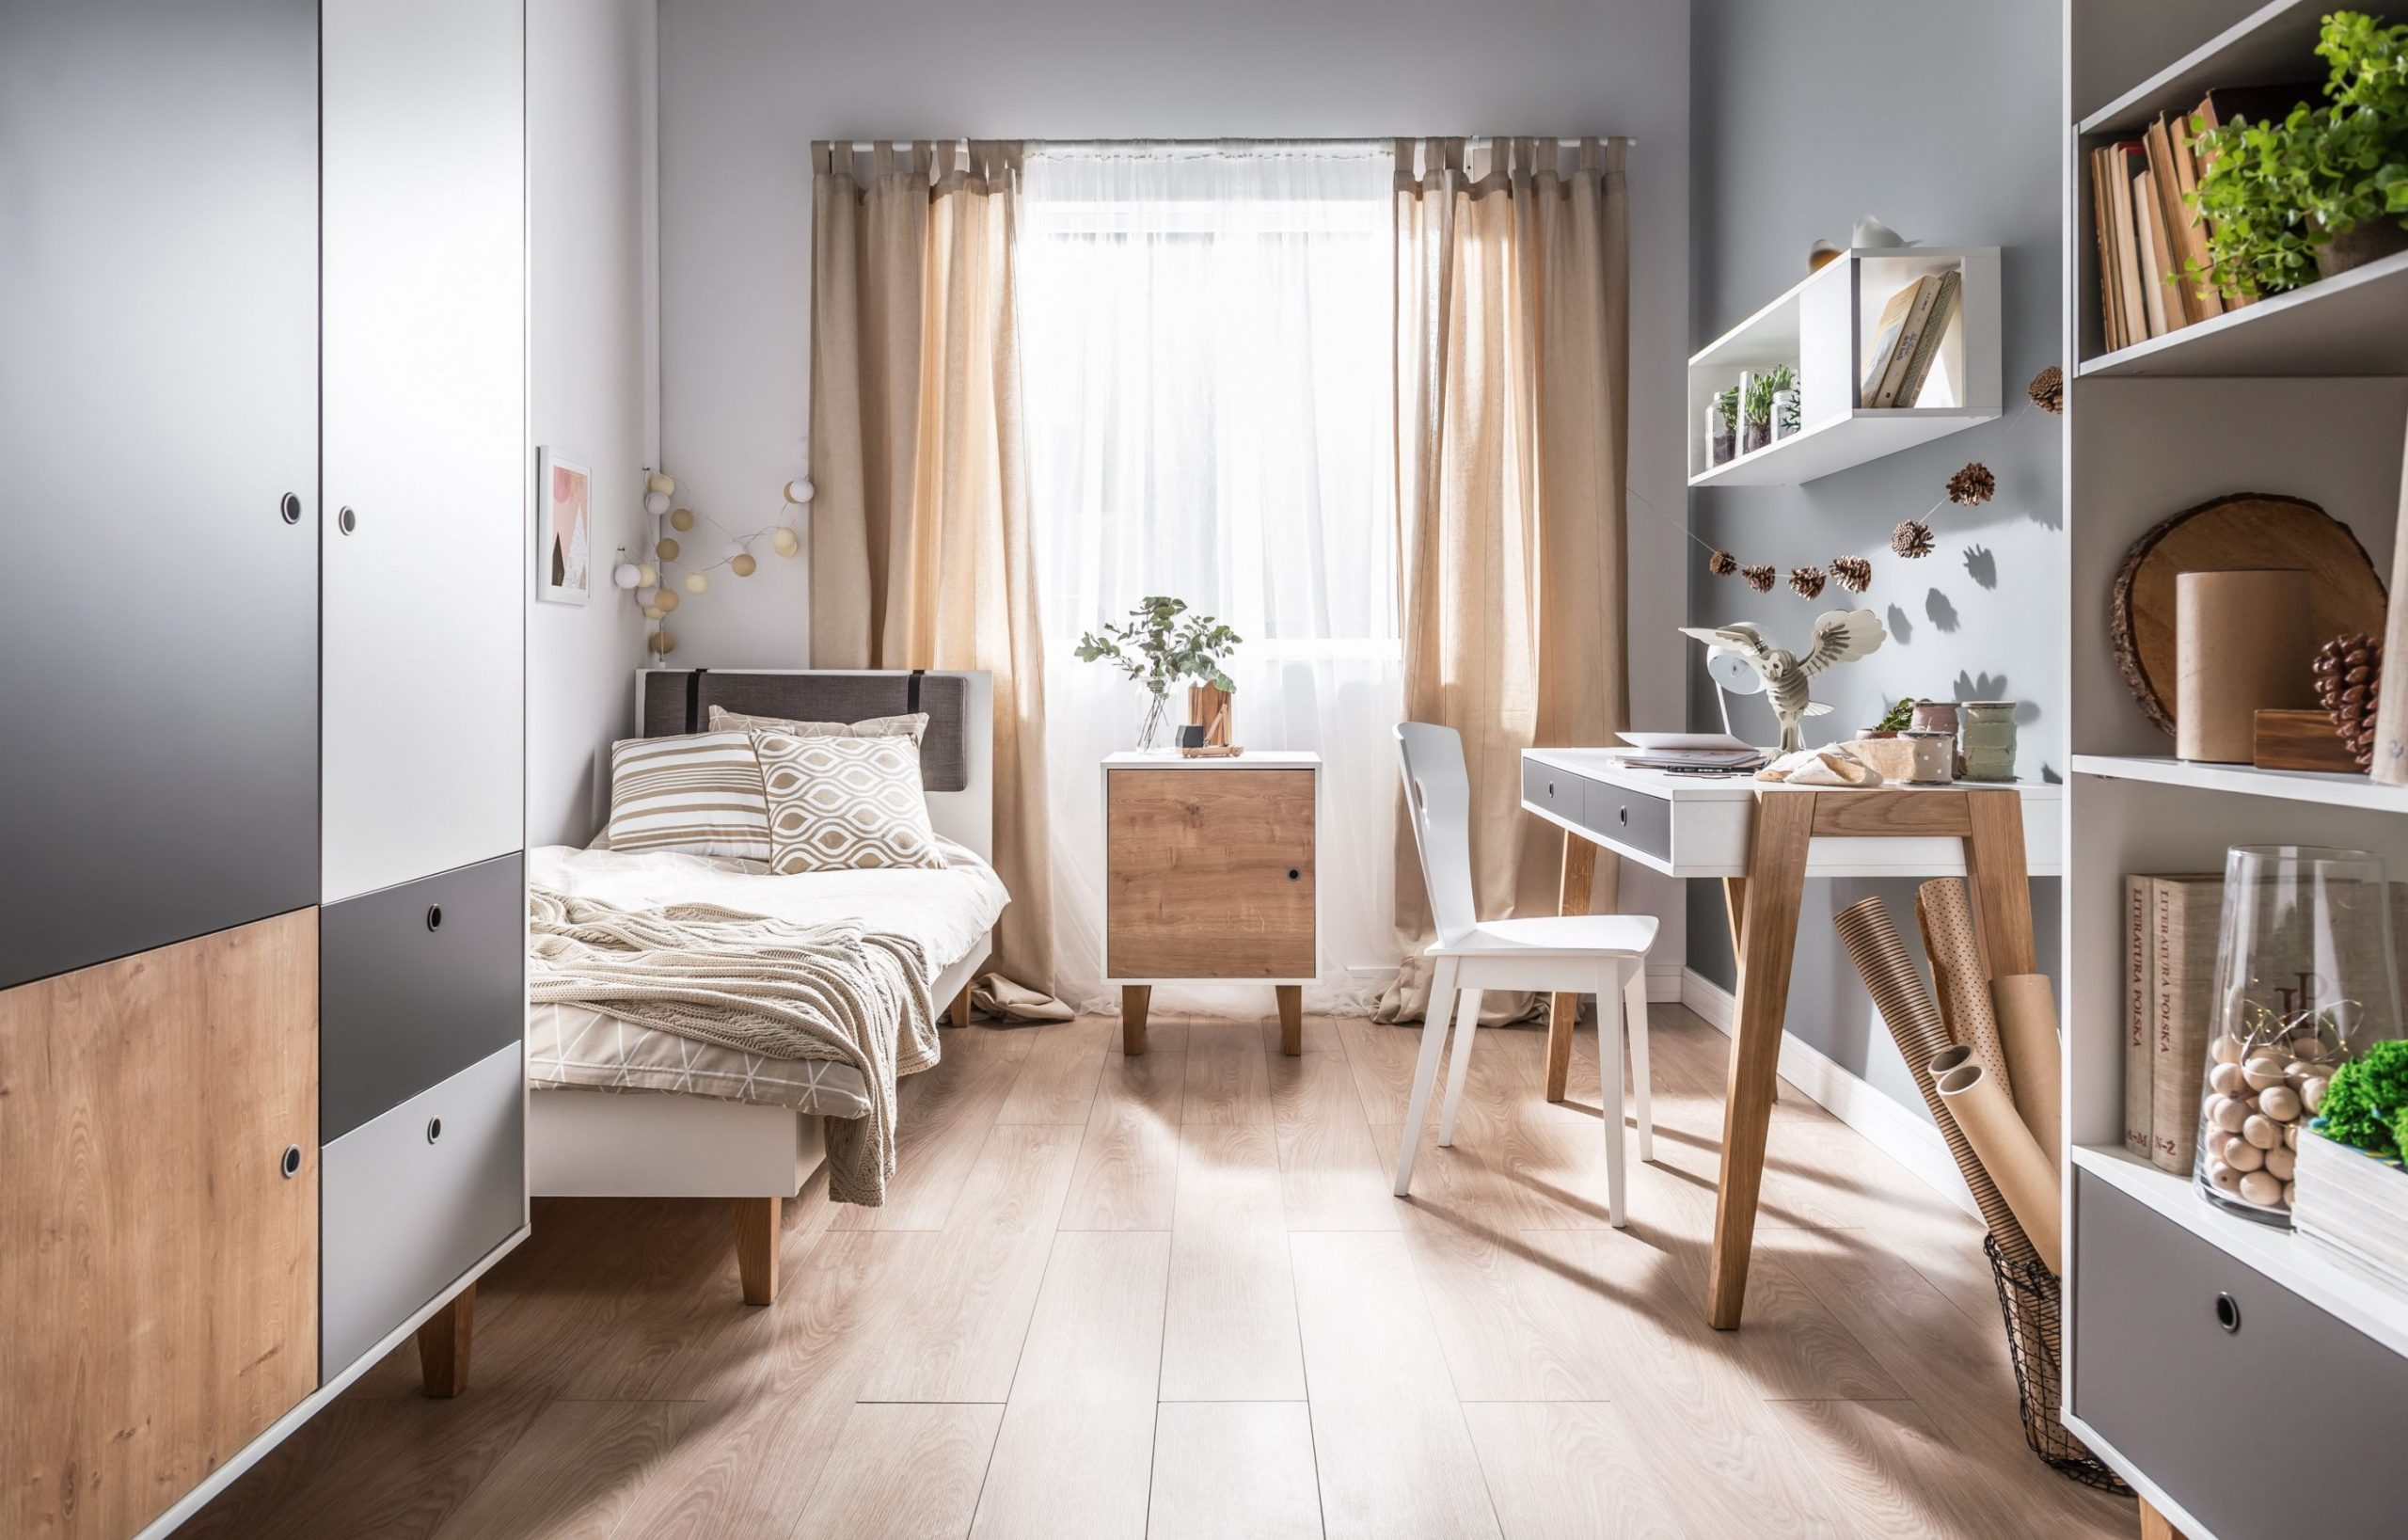 9 Small Bedroom Ideas To Fall In Love With – Small Bedroom  - Bedroom Ideas Small Room